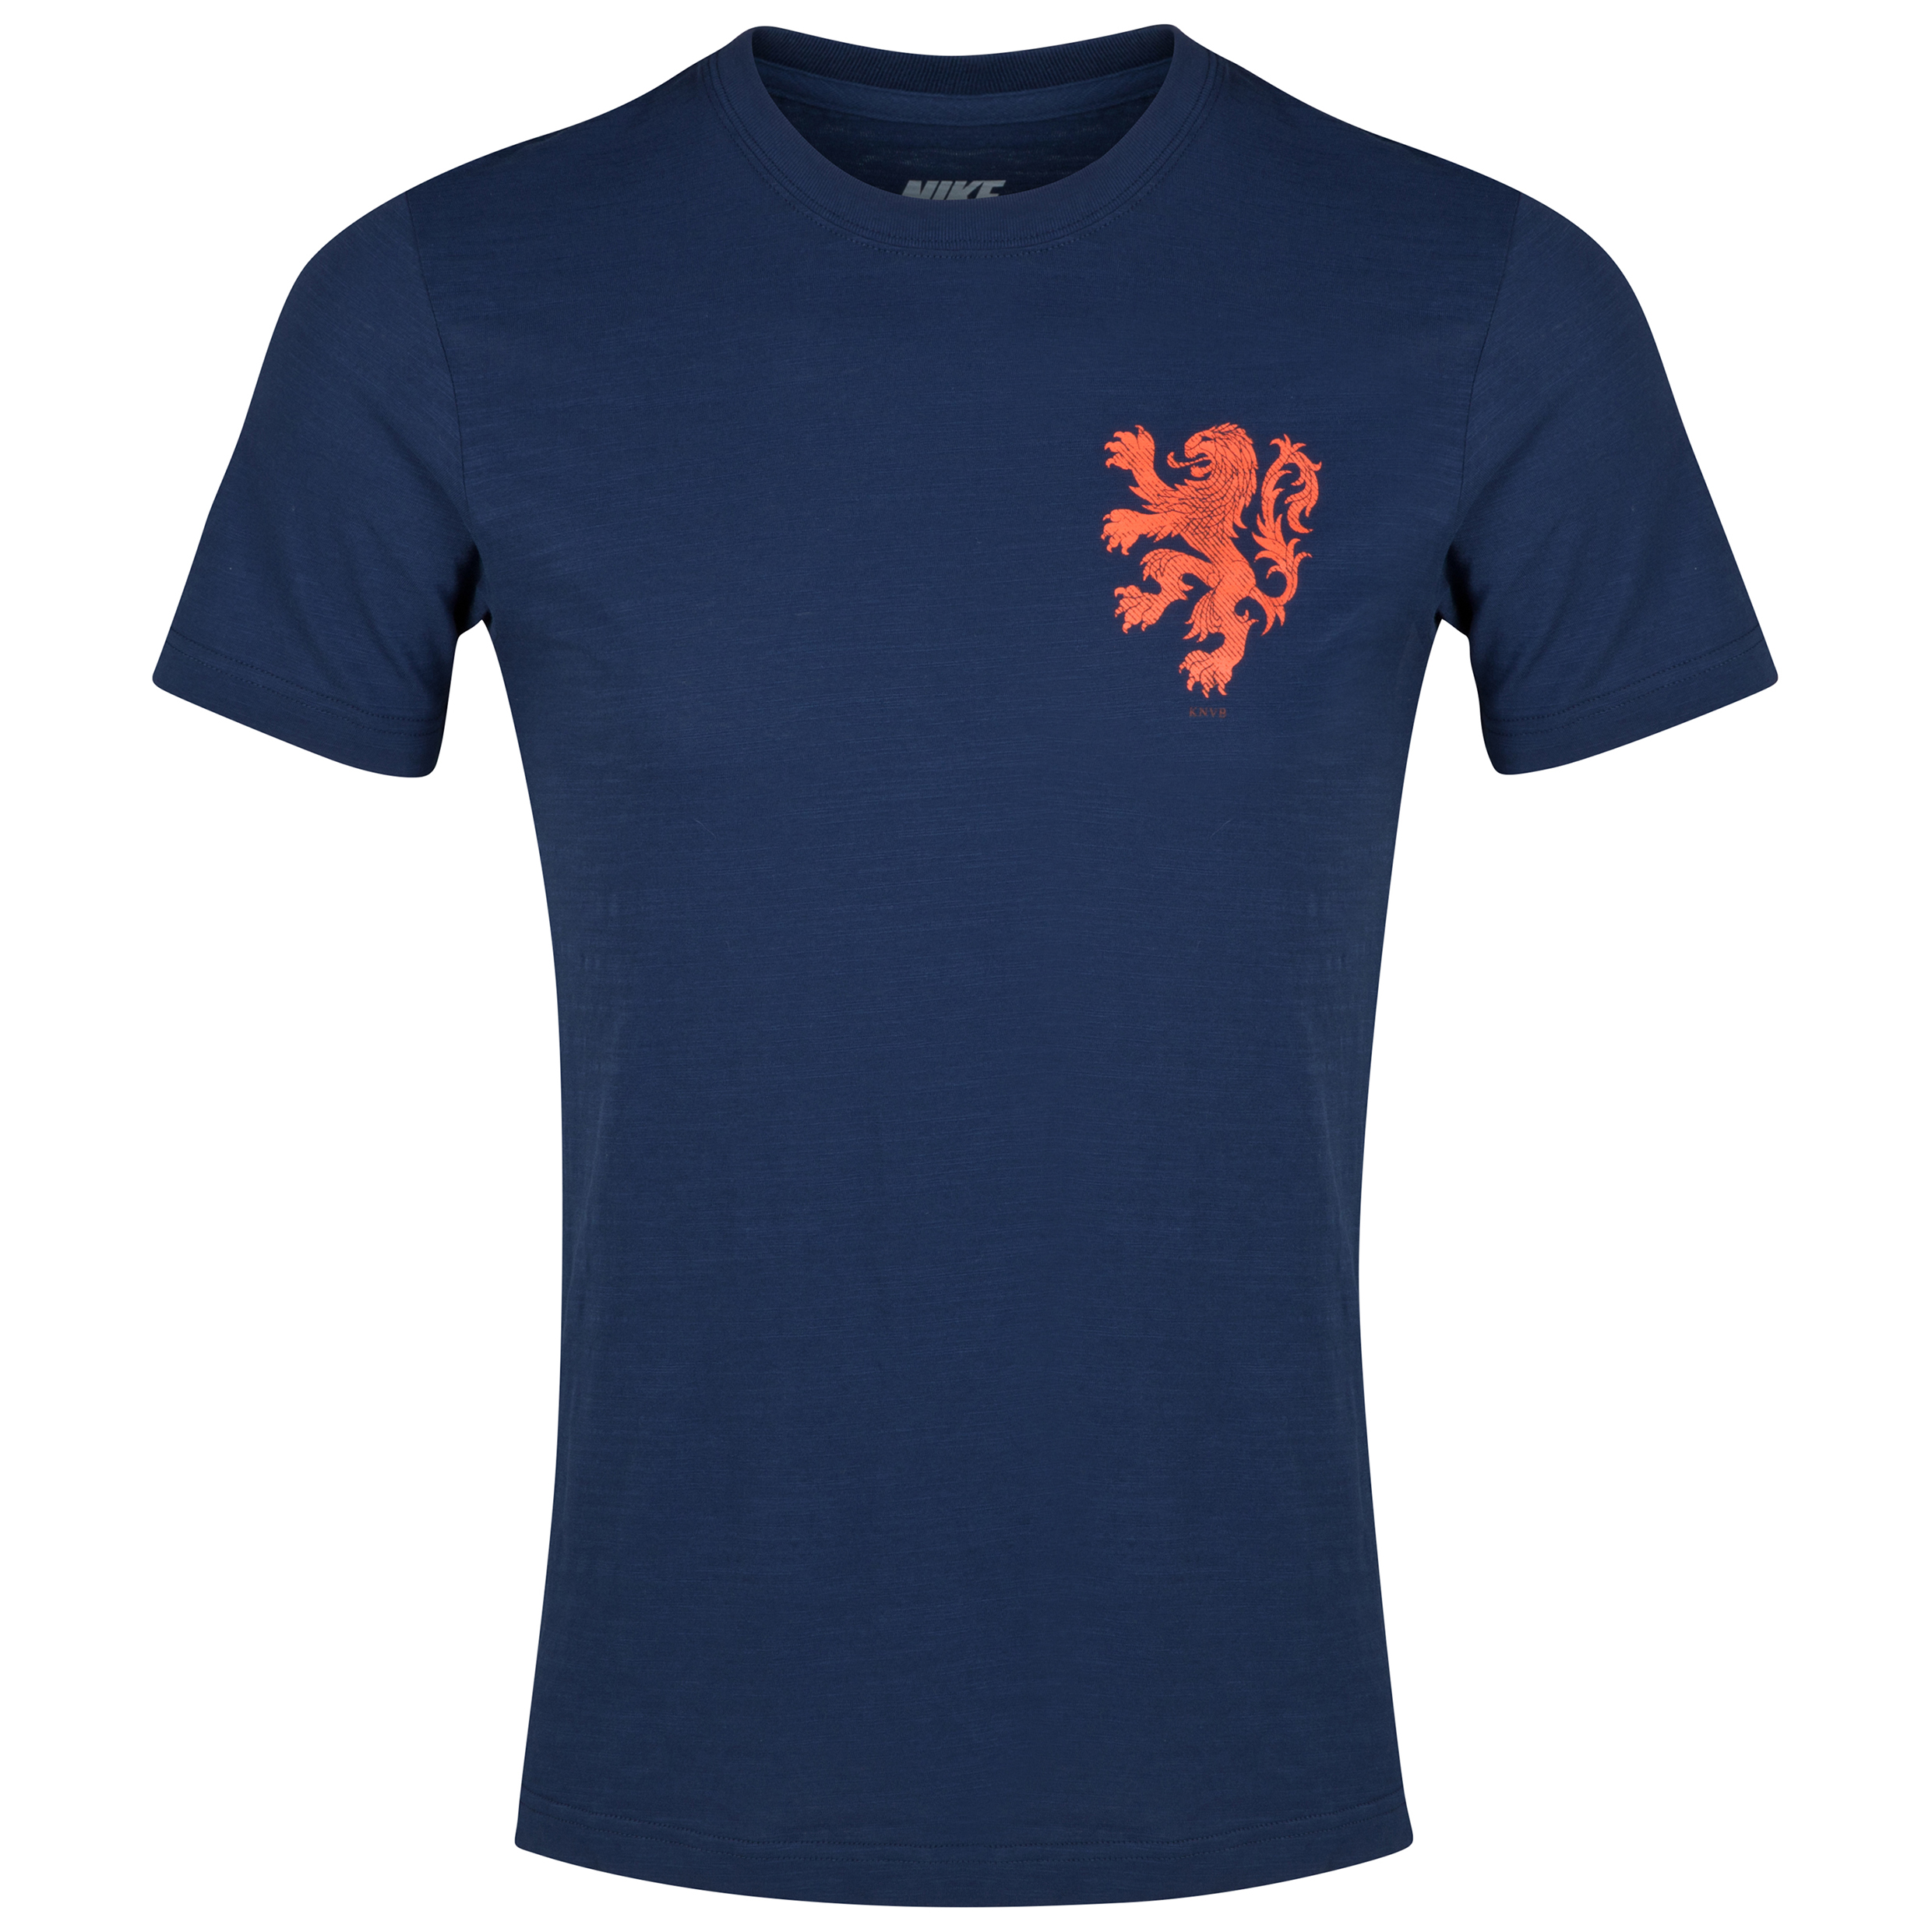 Netherlands Covert T-Shirt Navy